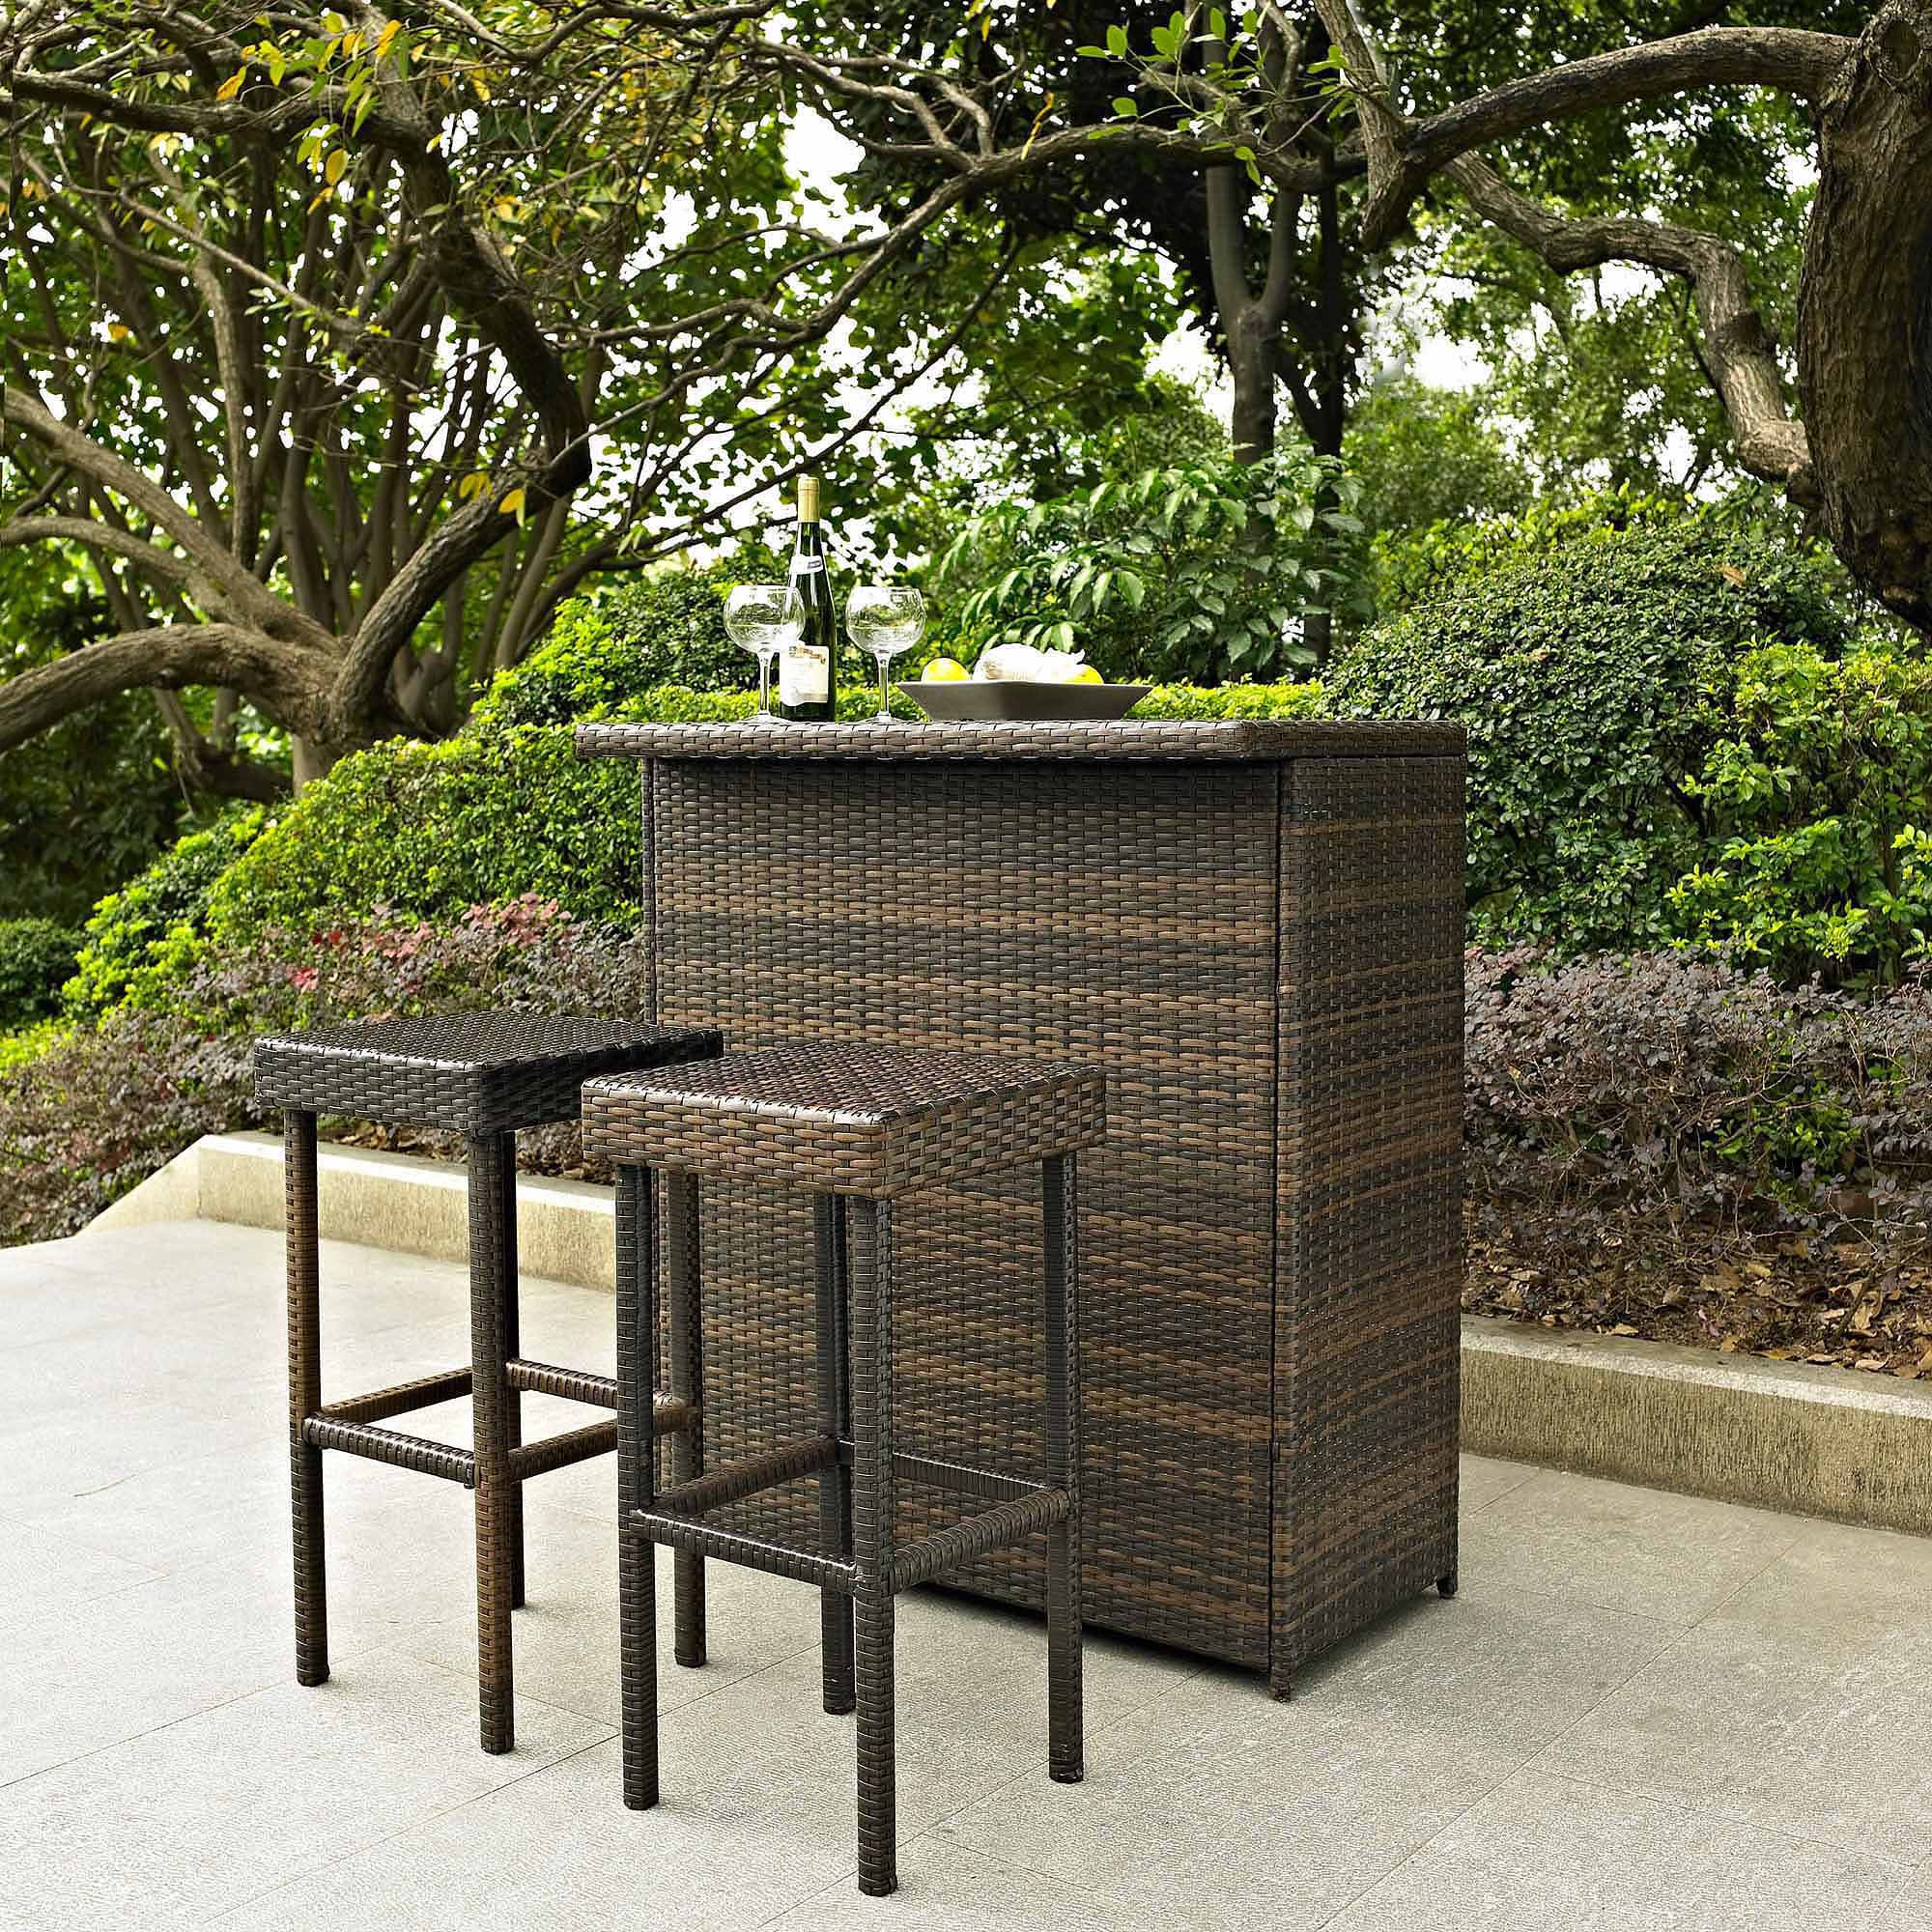 patio garden walmartcom - Garden Furniture 3 Piece